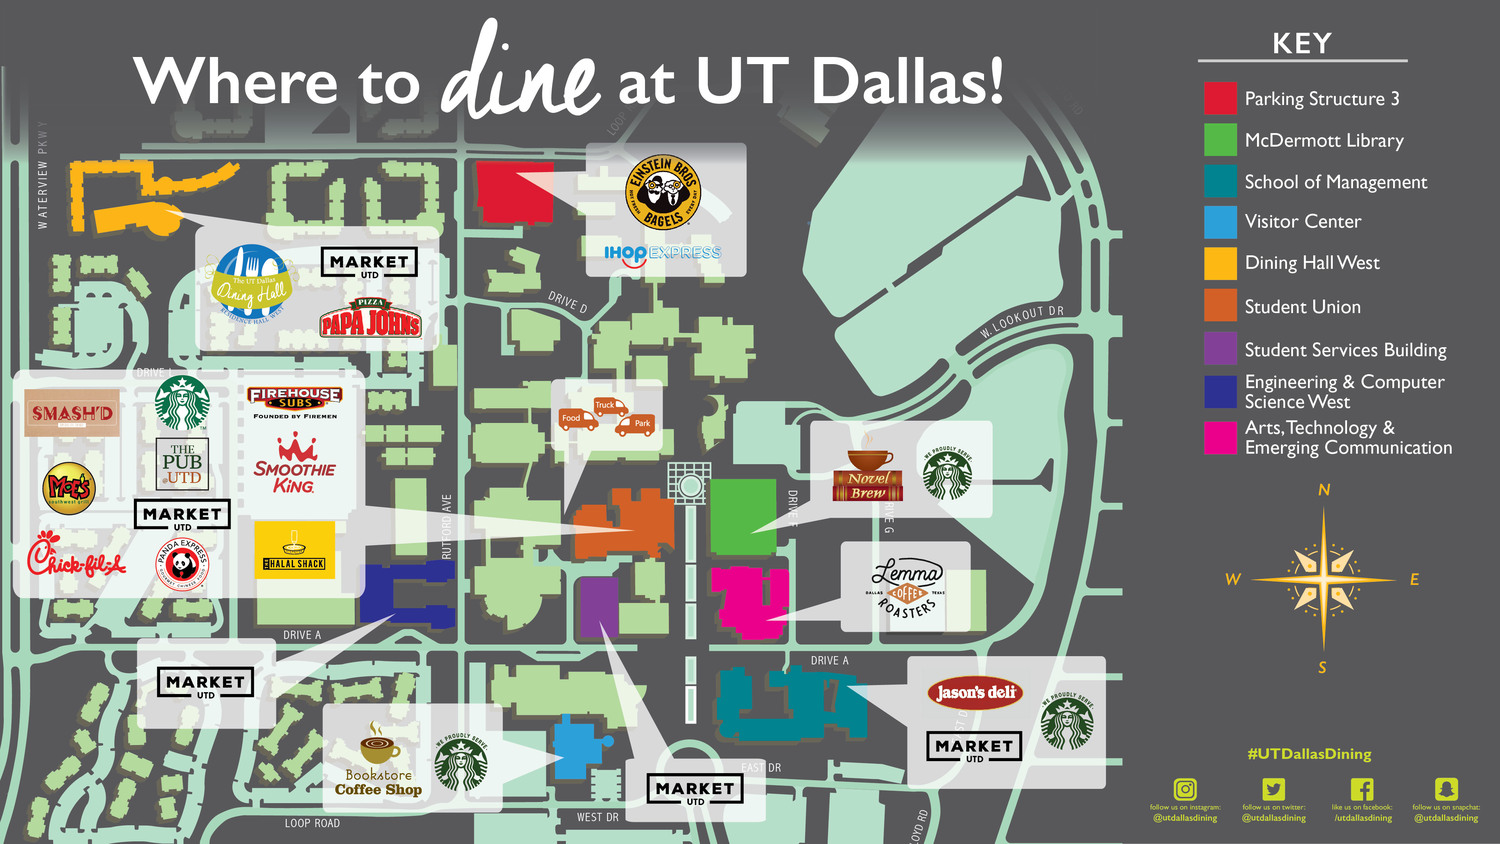 Dine On Campus at The University of Texas at Dallas || Where ... U Texas Campus Map on u texas commencement, ut austin building map, u of arizona campus map, u albany campus map, u pitt campus map, university of texas map, u texas computer science, u new haven campus map, u of idaho campus map, u texas map network drive,